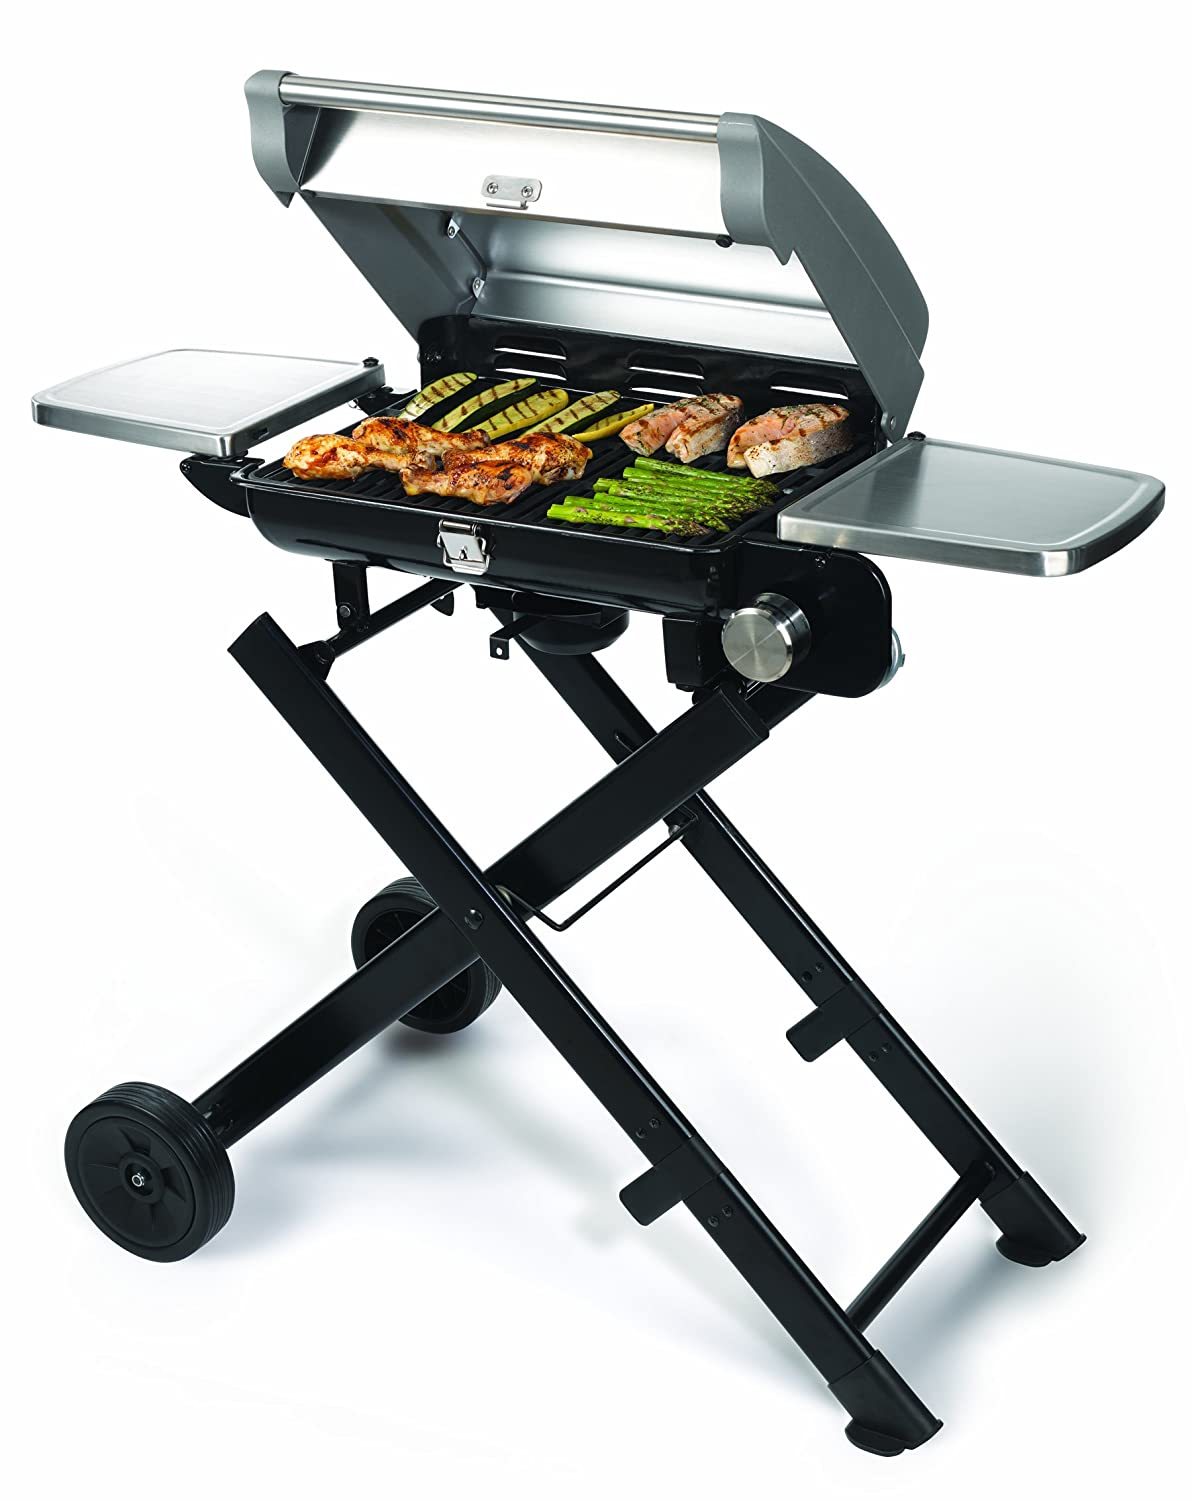 best portable gas grill for tailgating outsidemodern. Black Bedroom Furniture Sets. Home Design Ideas